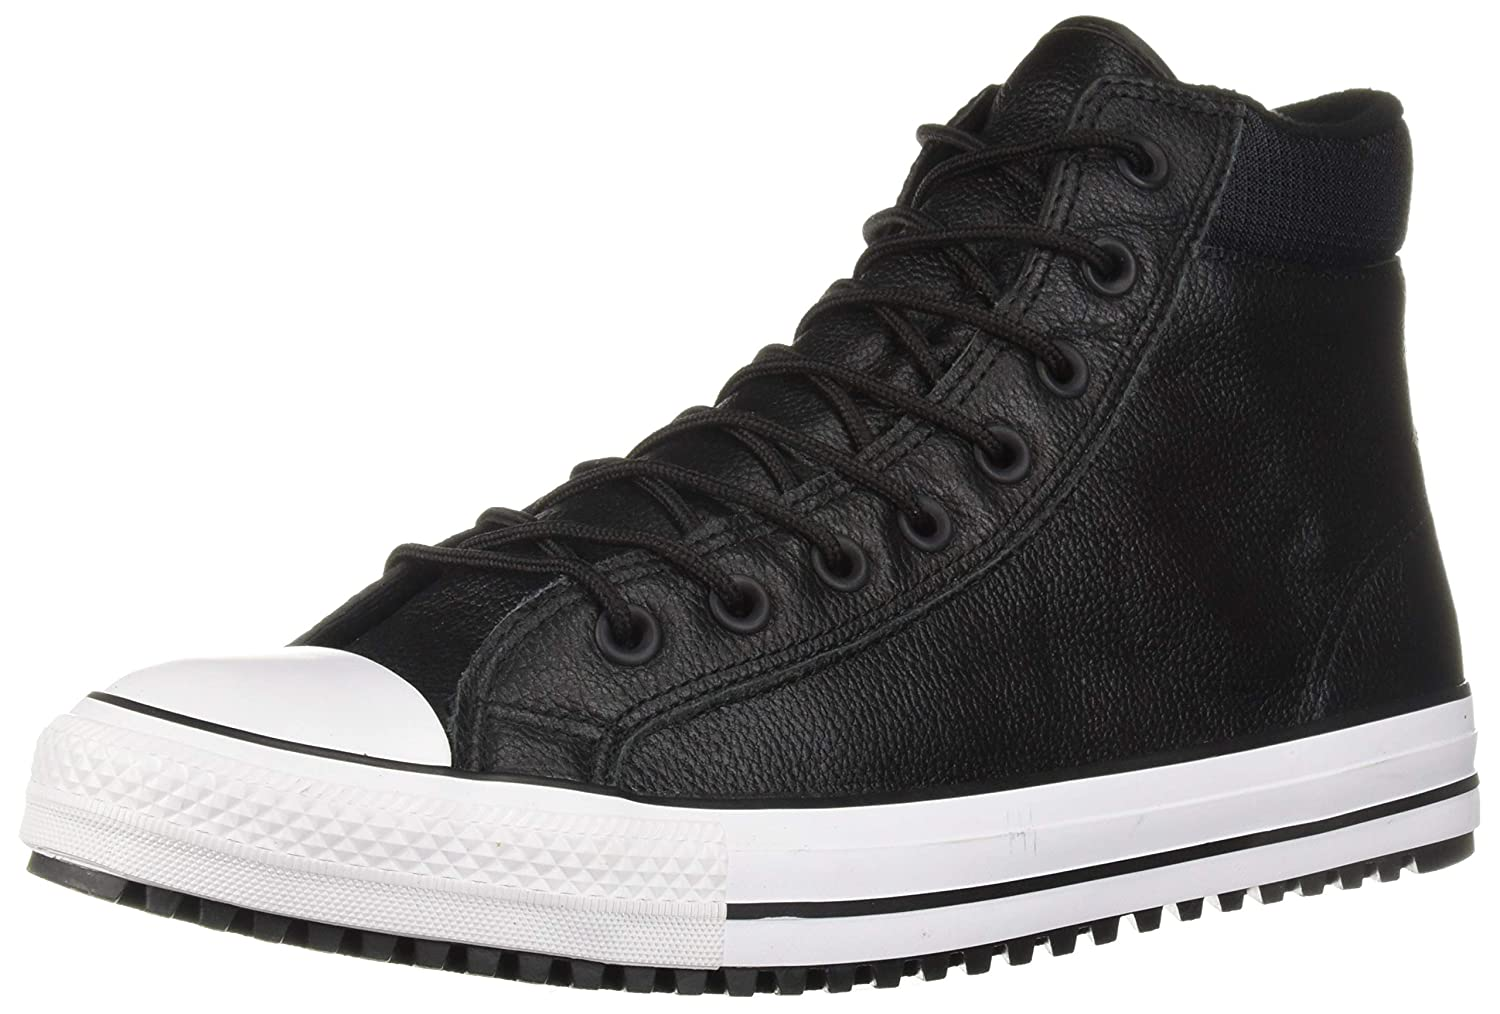 Converse Chuck Taylor All Star PC HI Calzado